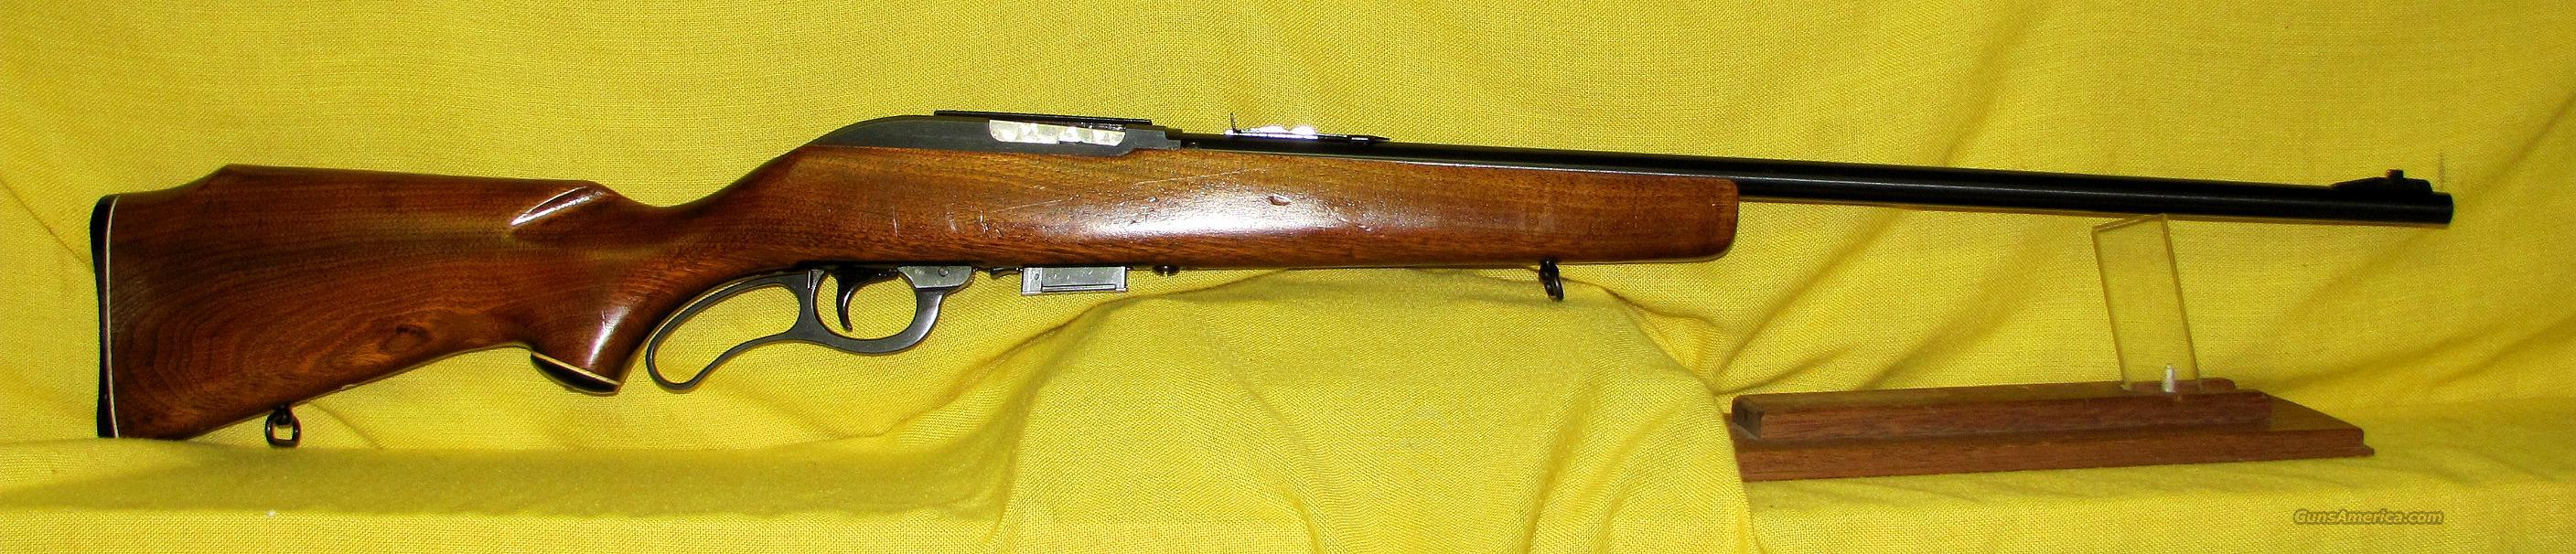 "MARLIN 62 .256 WIN MAG 24"" BARREL  Guns > Rifles > Marlin Rifles > Modern > Lever Action"